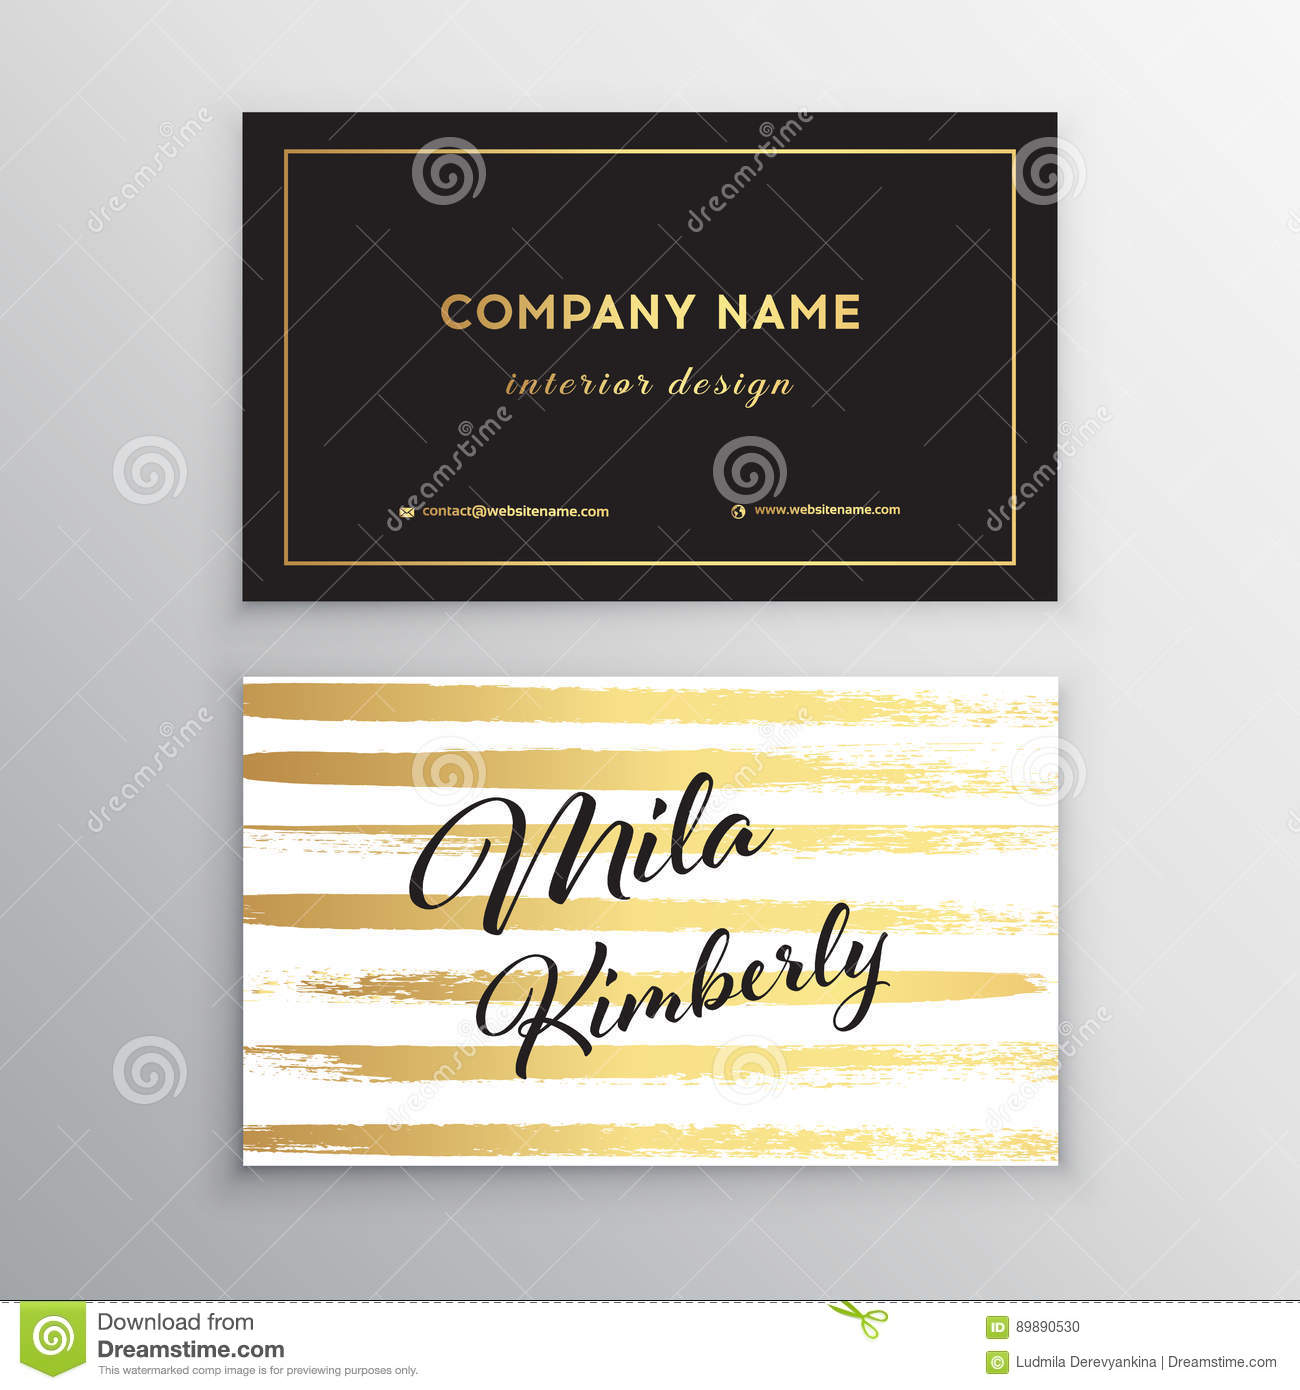 Set of vector business card templates with brush stroke background royalty free vector download set of vector business card templates accmission Choice Image